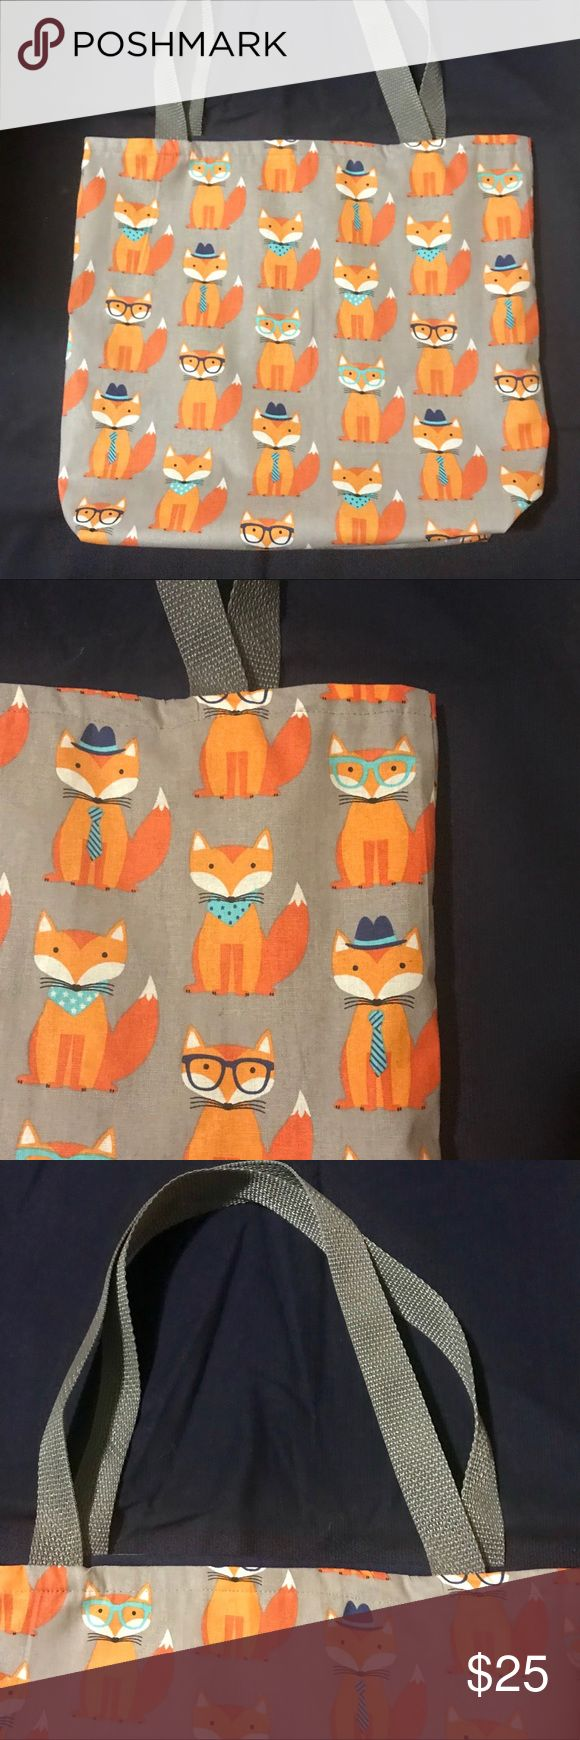 """Nerdy FOX Print TOTE cotton purse shoulder bag Adorable! Nerdy FOX print COTTON tote. 12"""" x 14"""". 3"""". In gray and orange, with navy blue liner. Great recyclable, reversible, and washable bag, all purpose! Hand make /sewn by local artist. ❤️(0227) Bags Totes"""